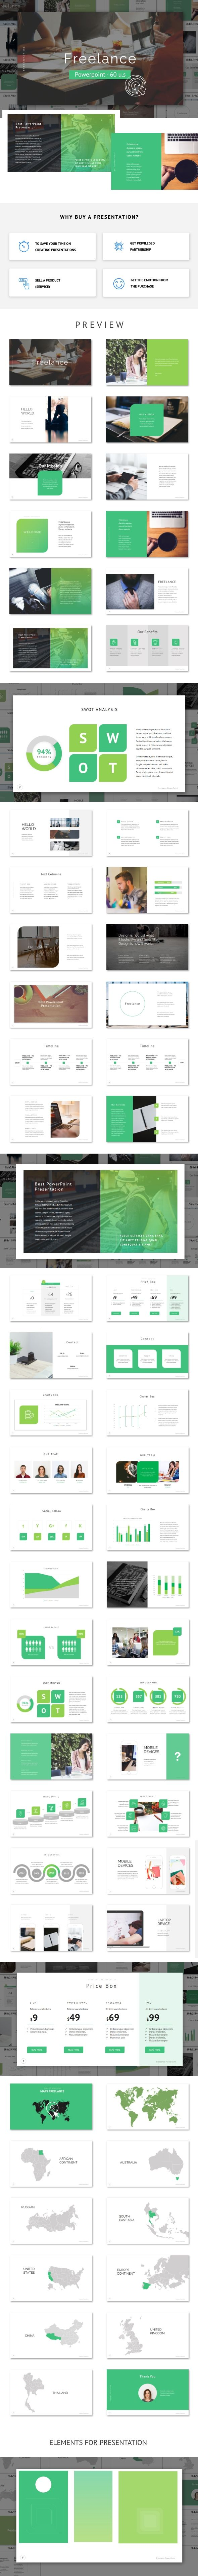 Freelance Powerpoint Template #creative #minimalistic • Download ➝ https://graphicriver.net/item/freelance-powerpoint-template/19542641?ref=pxcr